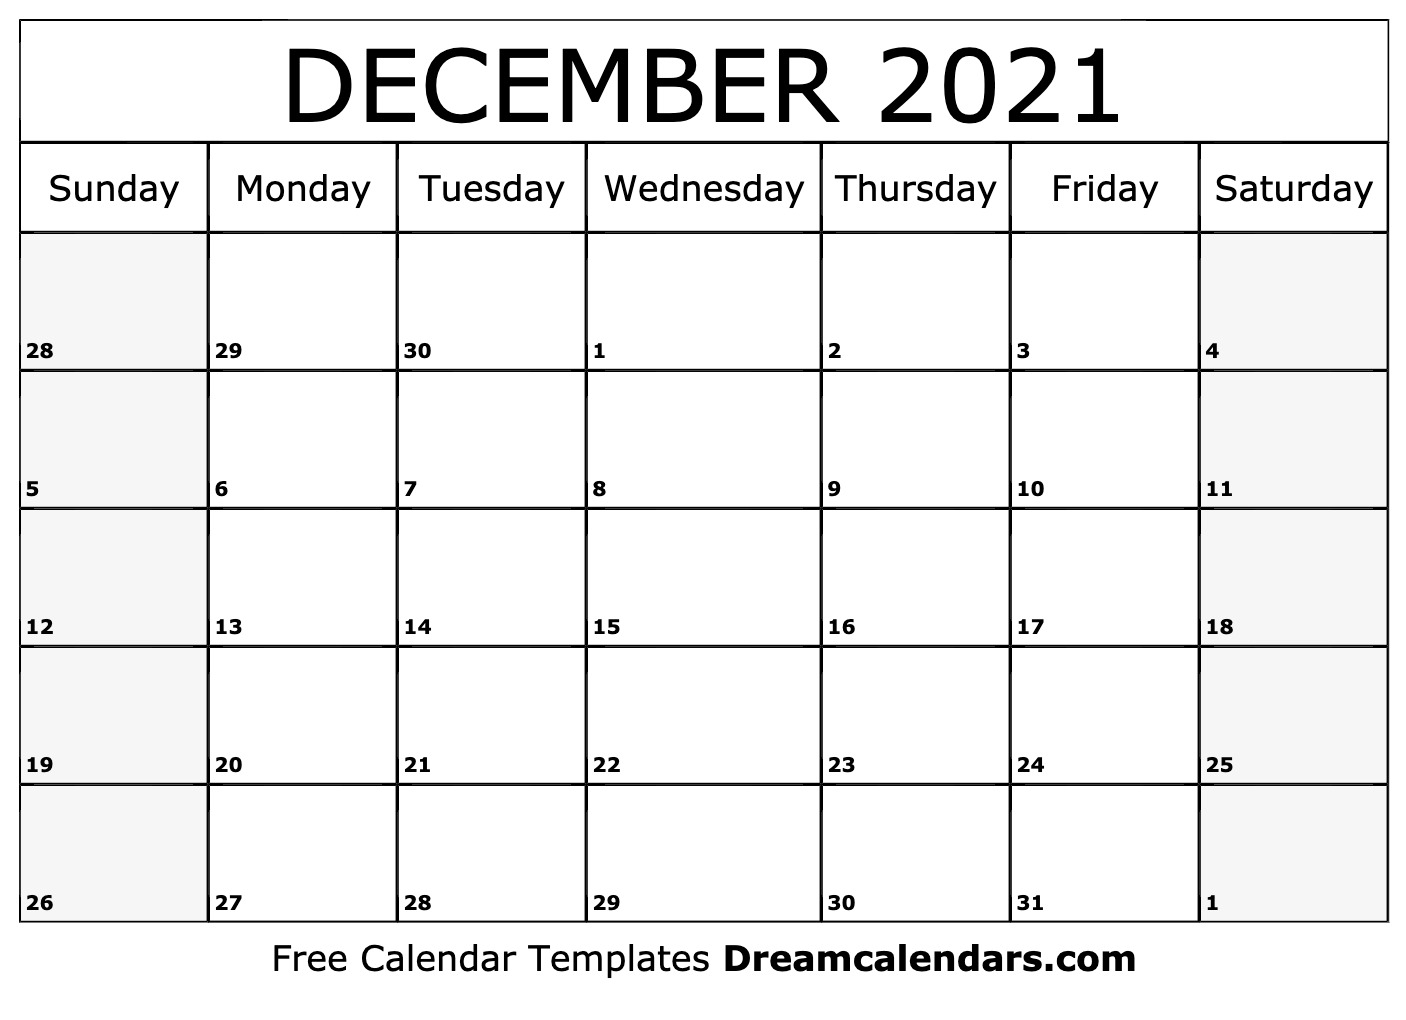 Collect August – December 2021 Calendar Printable